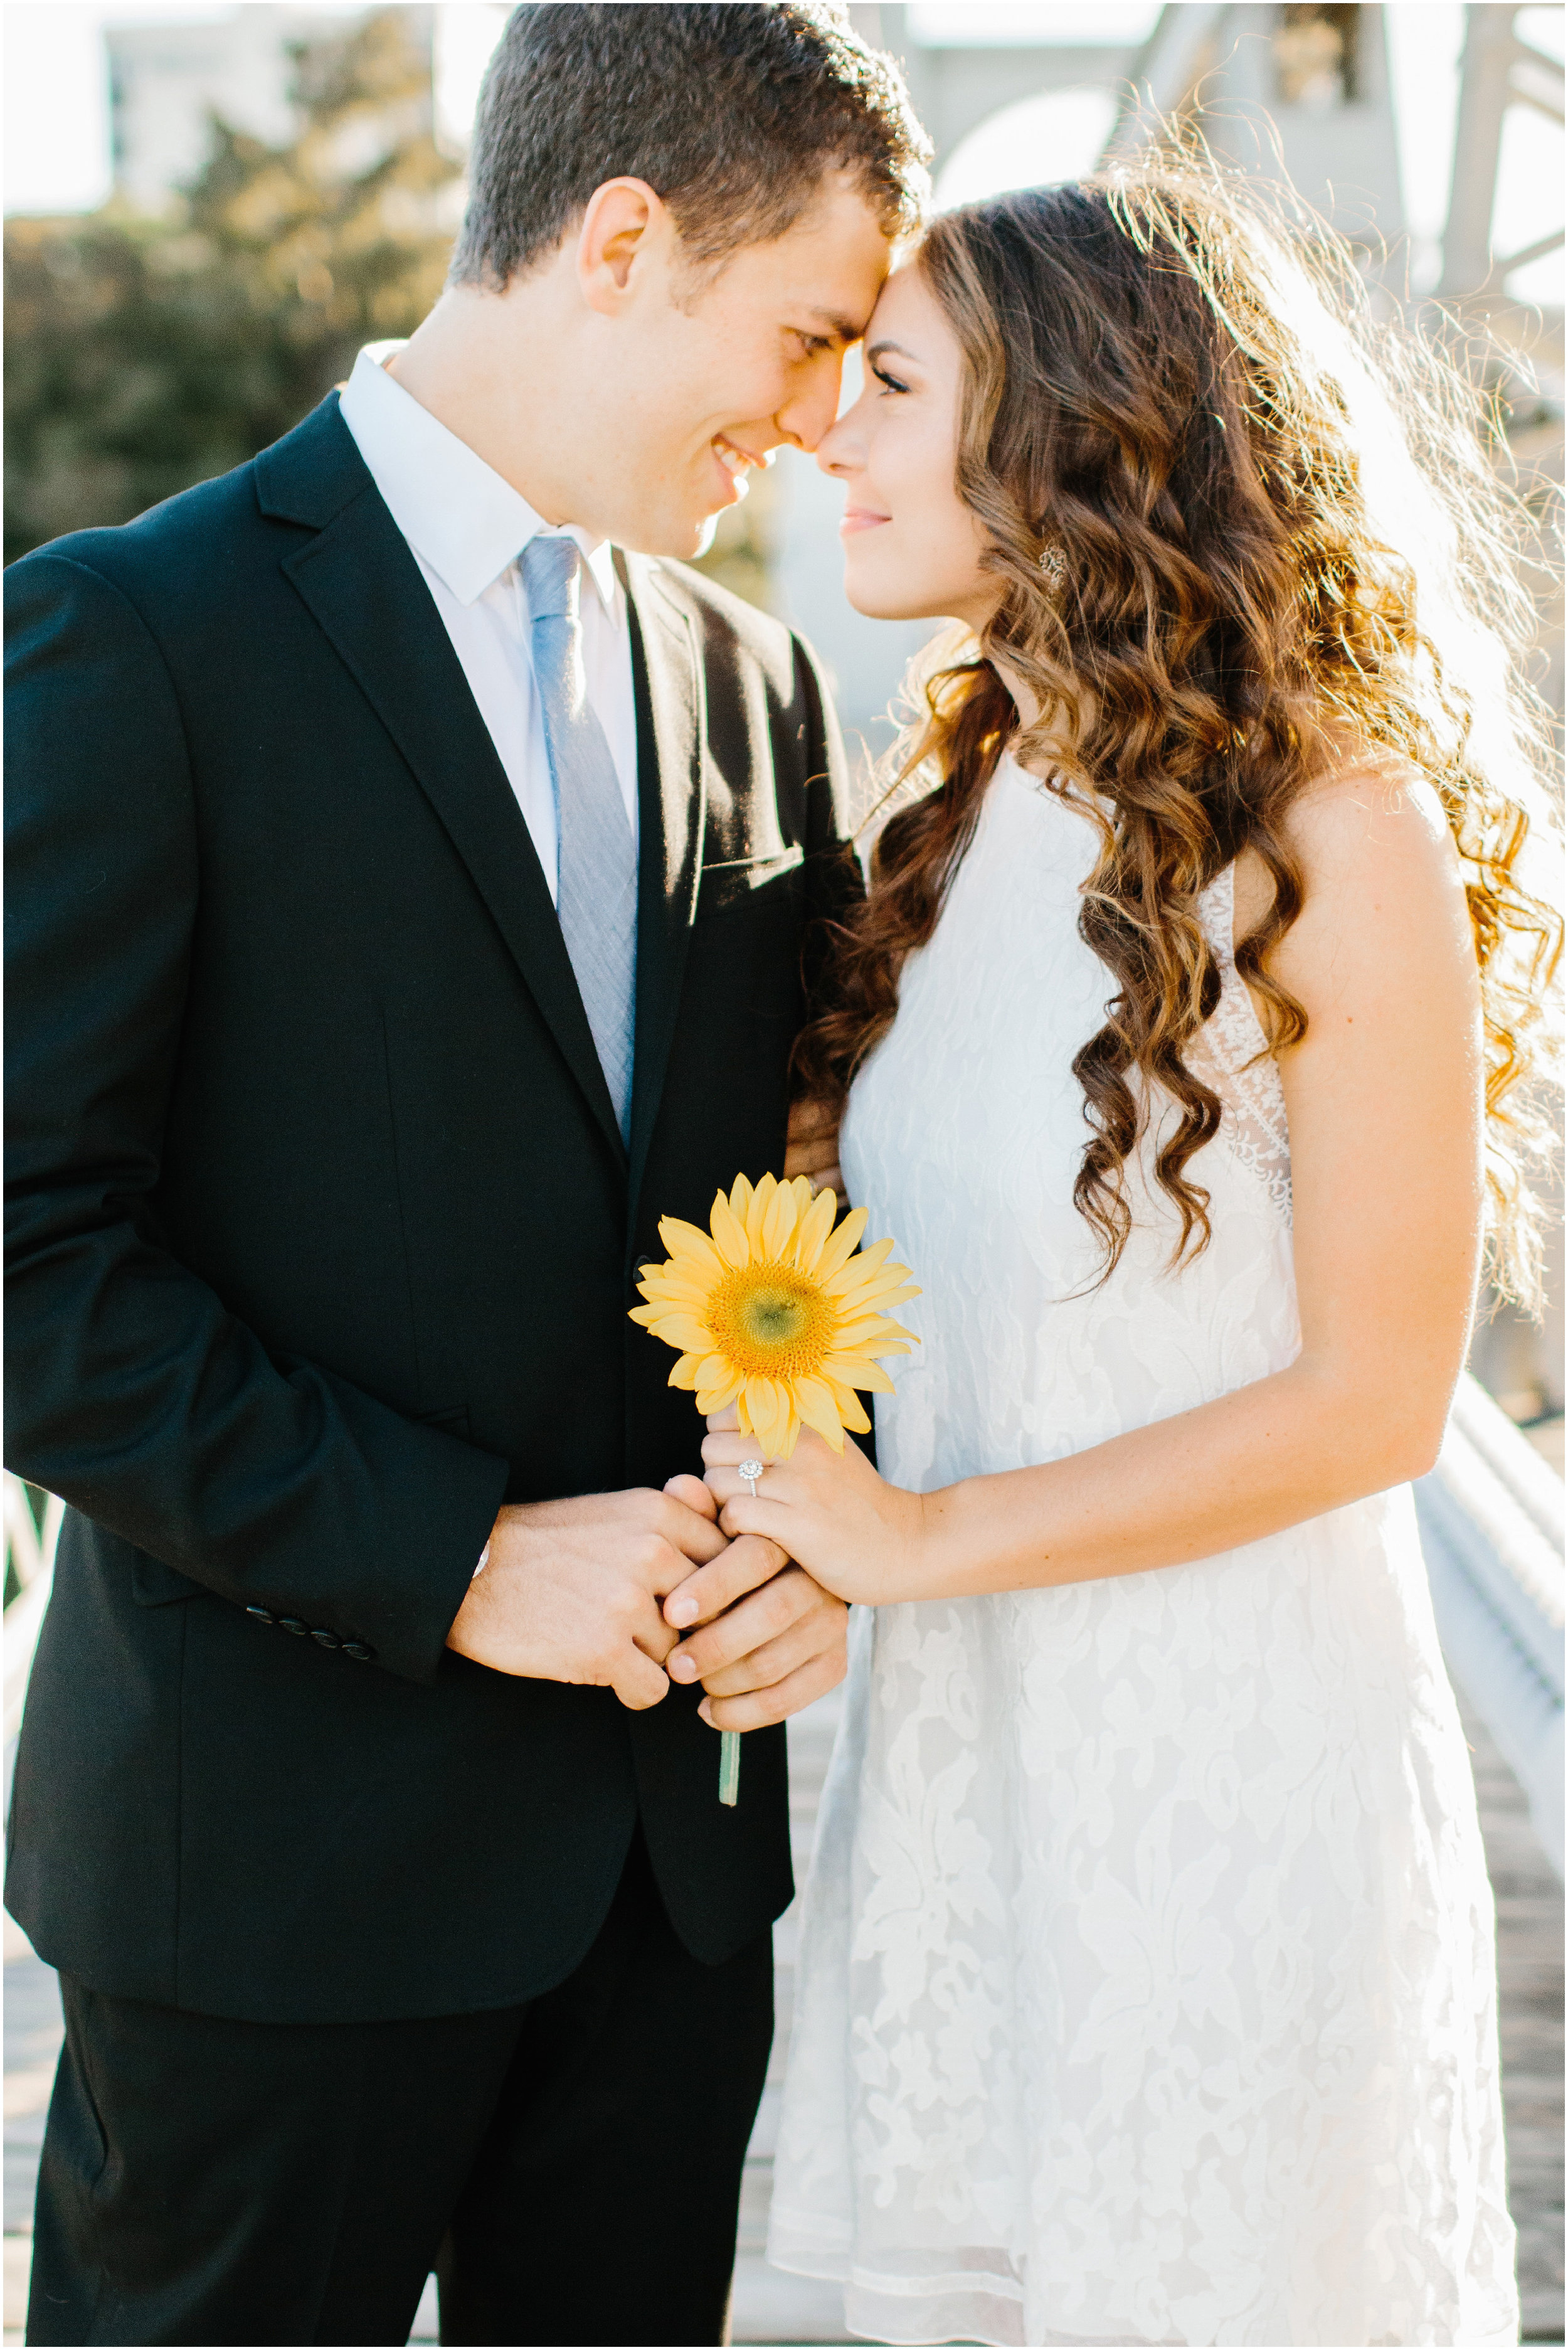 Downtown_Waco_Engagement_Session-56.jpg